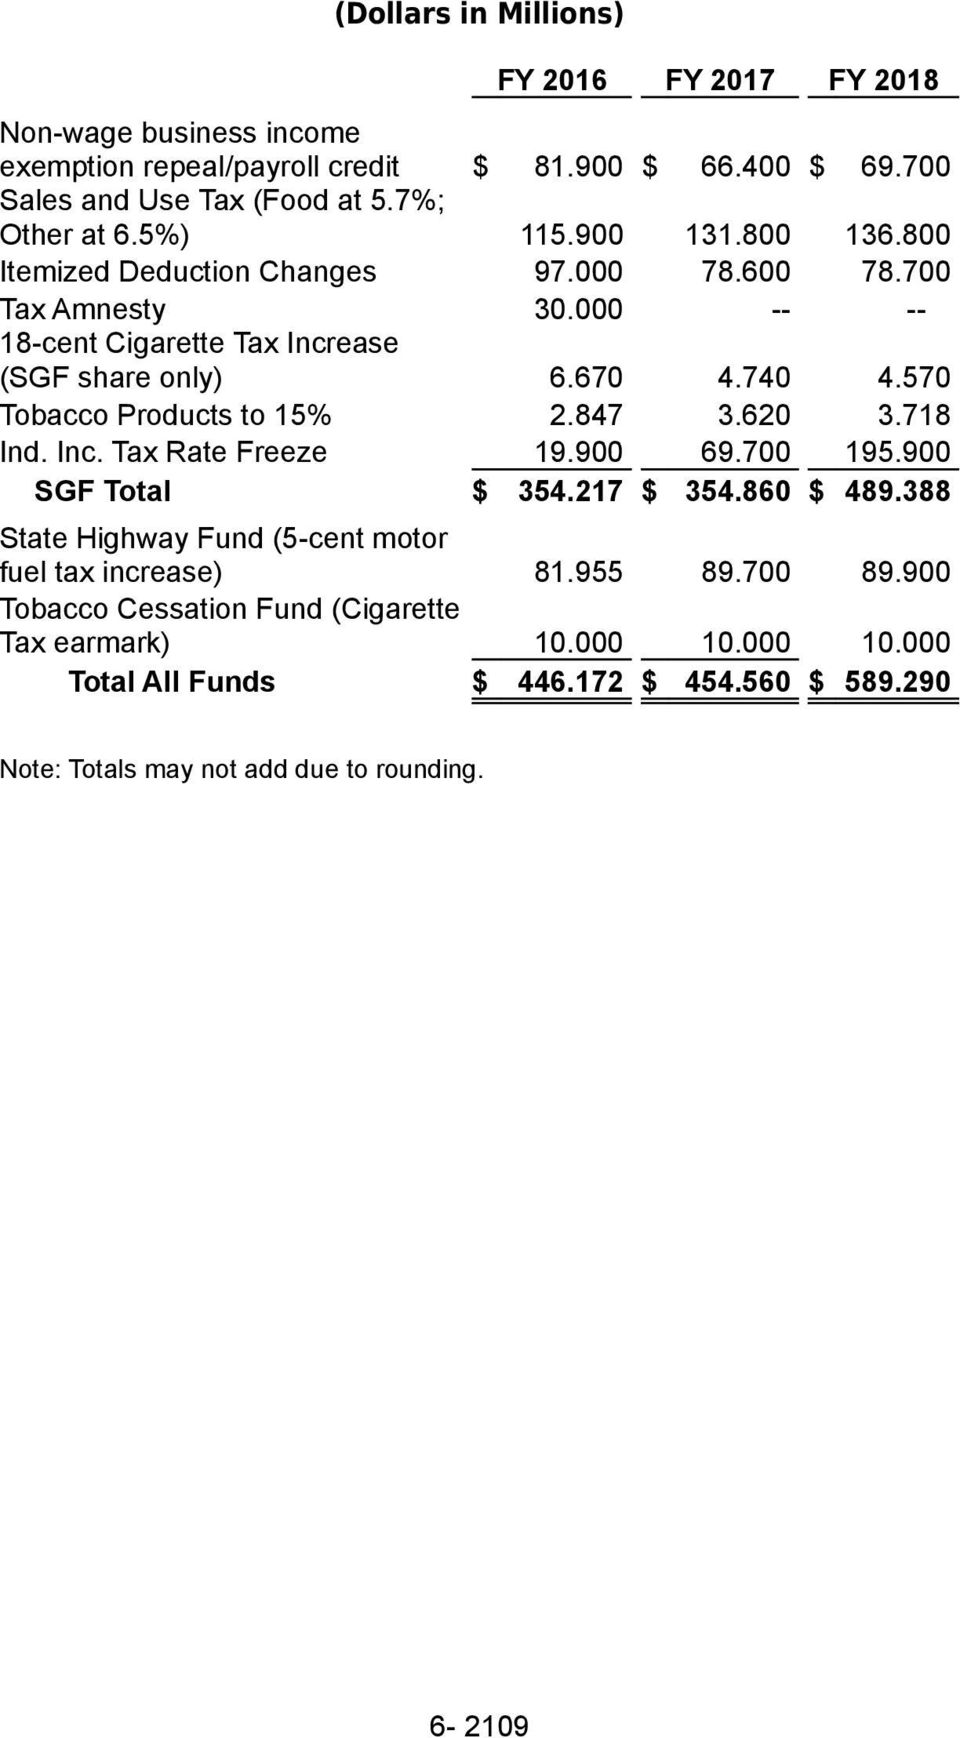 570 Tobacco Products to 15% 2.847 3.620 3.718 Ind. Inc. Tax Rate Freeze 19.900 69.700 195.900 SGF Total $ 354.217 $ 354.860 $ 489.